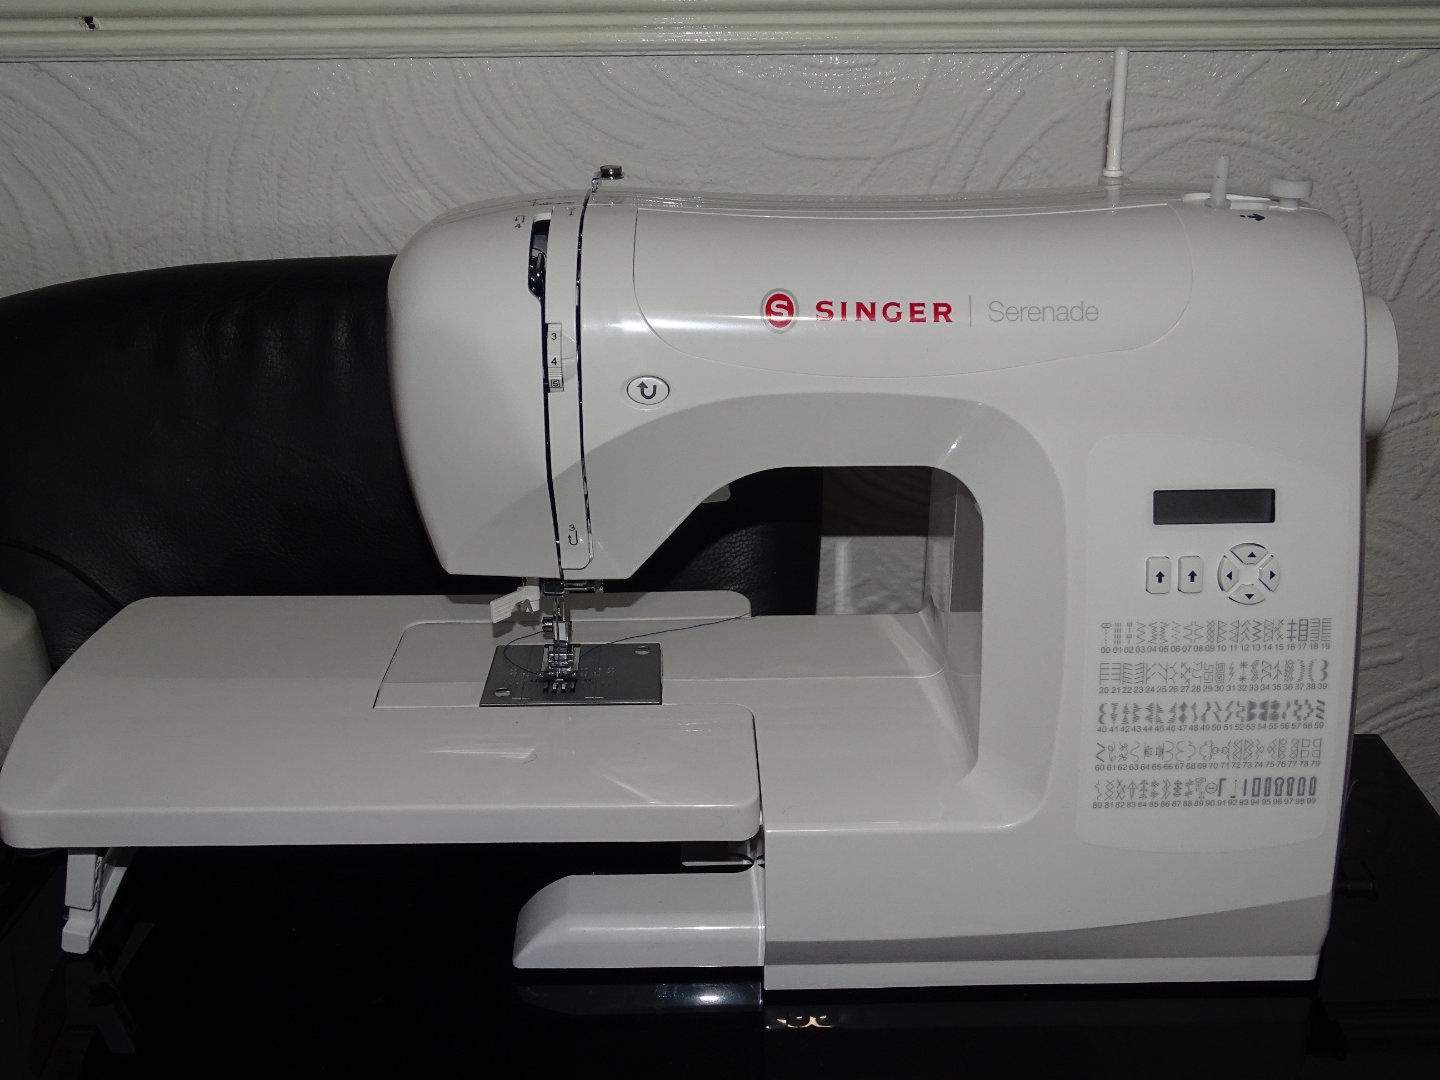 Singer Serenade C520L sewing machine sold at lidl